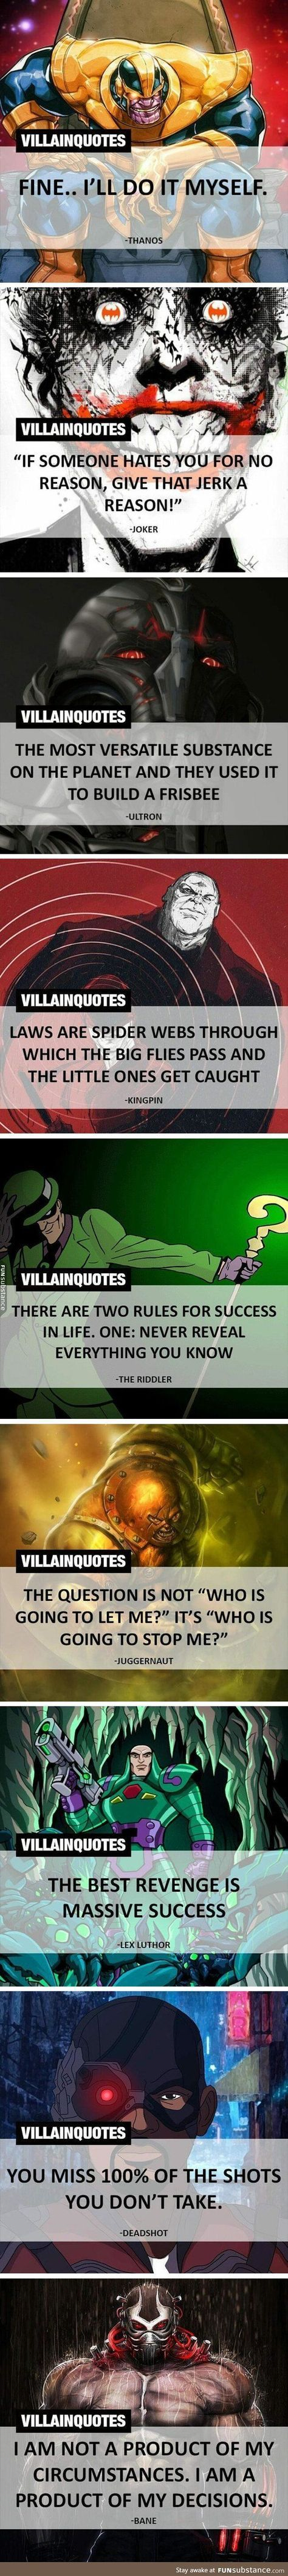 "There's a very fitting quote from on of my favourite book. ""I remember what I just do. Even if it makes me the villain of my own story"". I think about that quite often. And these quotes are similar. So... why are villains villains? Because they do things"